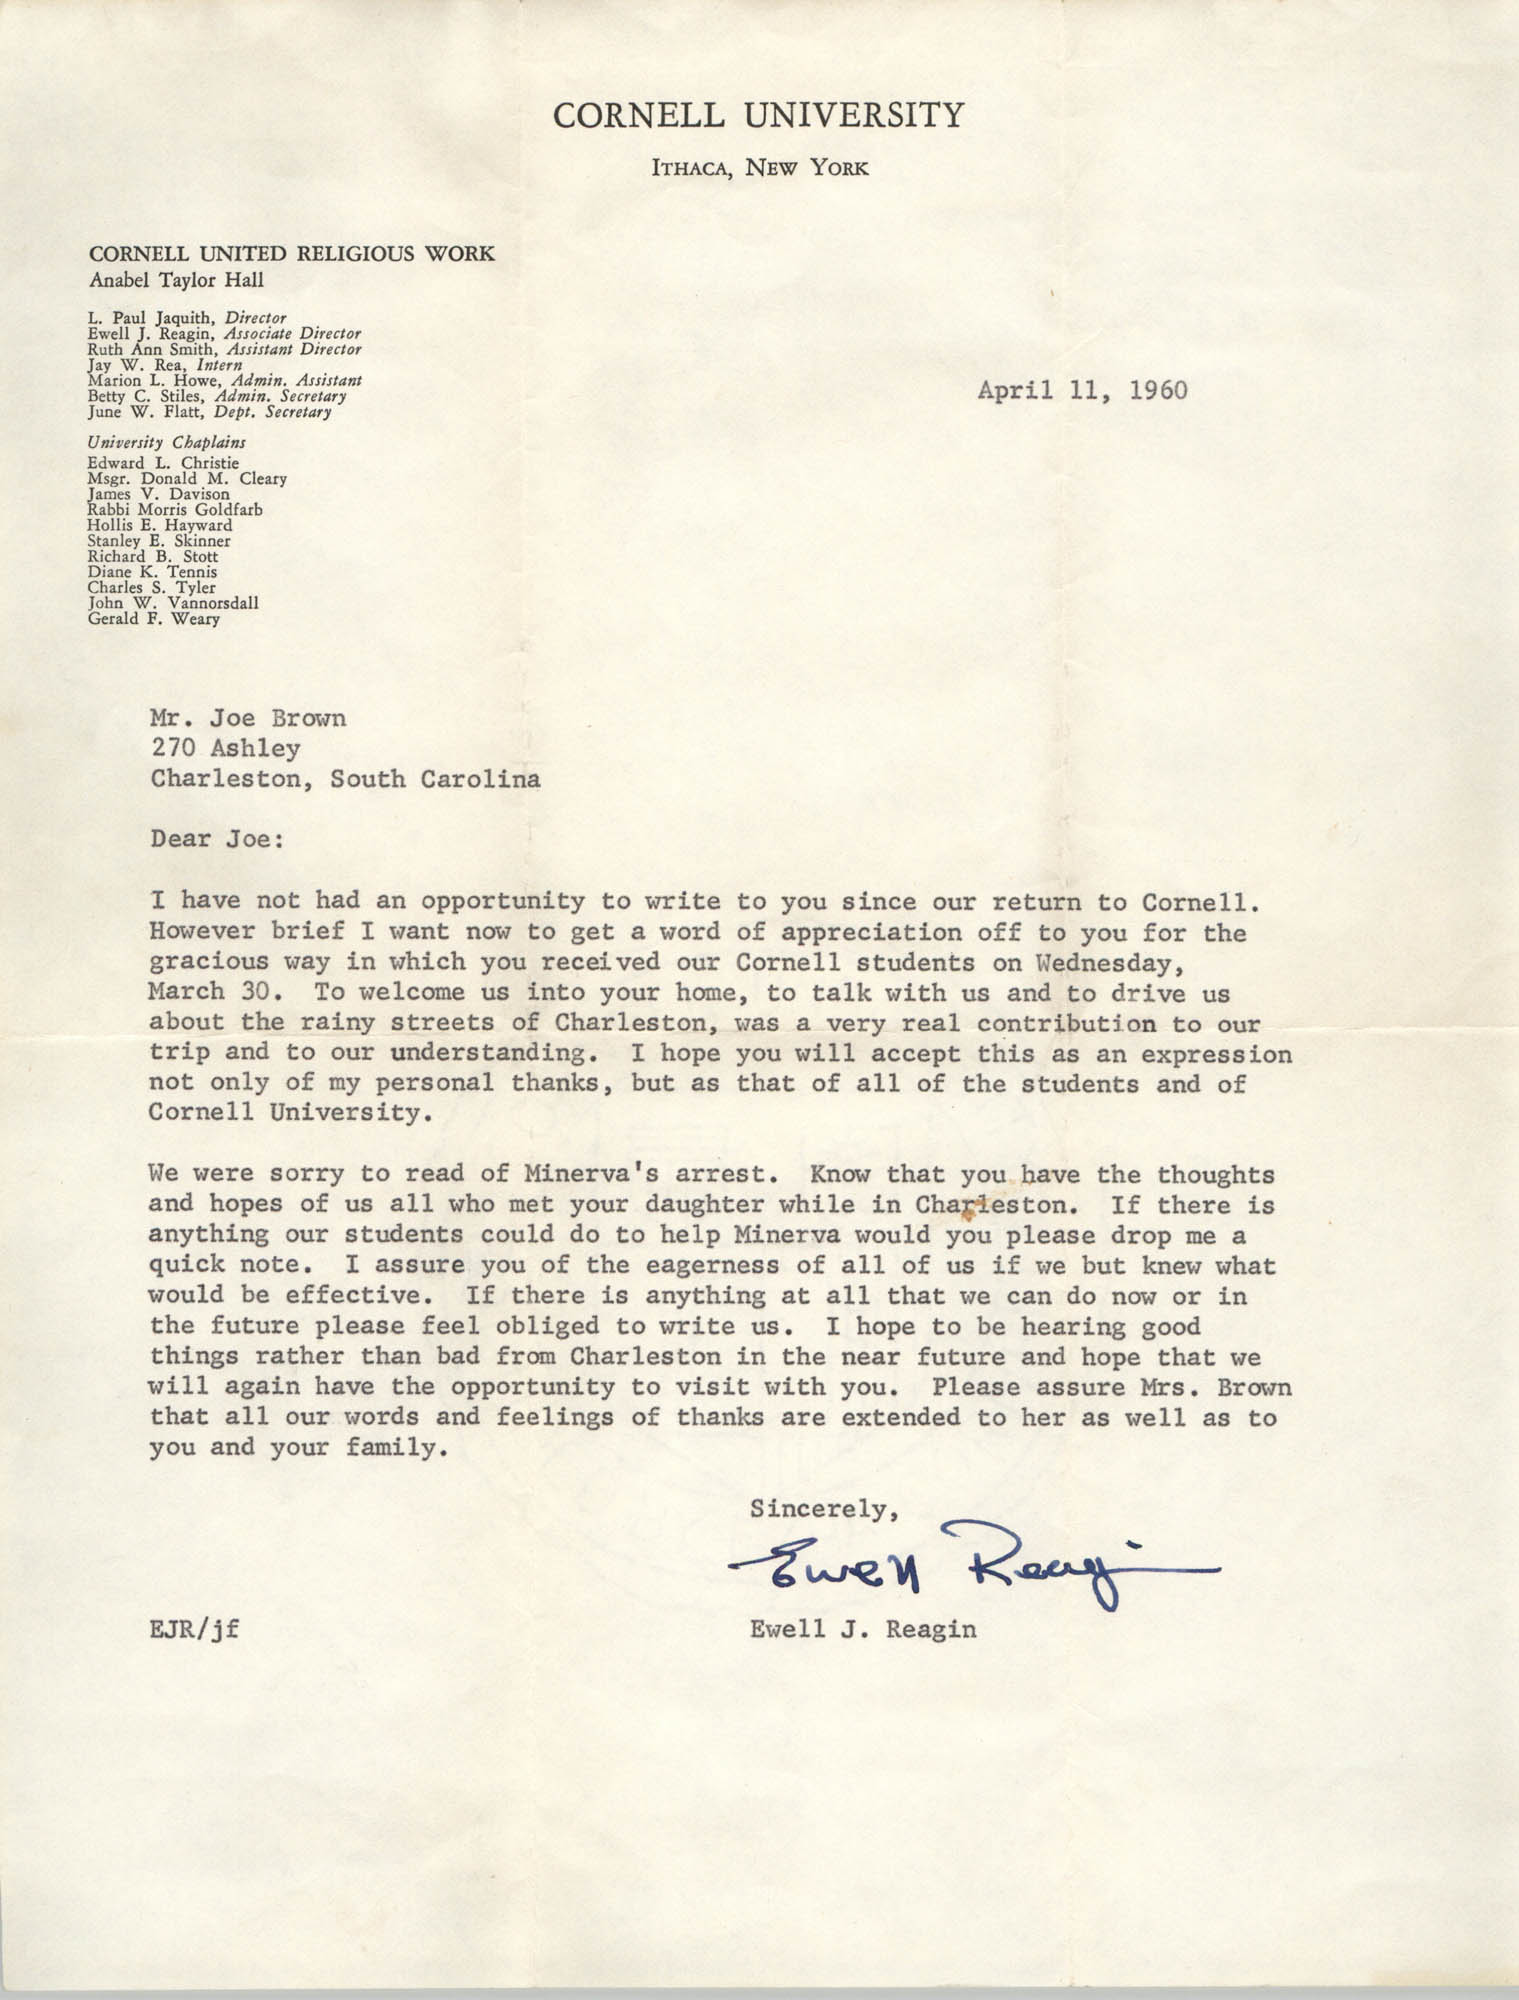 Letter from Ewell J. Reagin to J. Arthur Brown, April 11, 1960